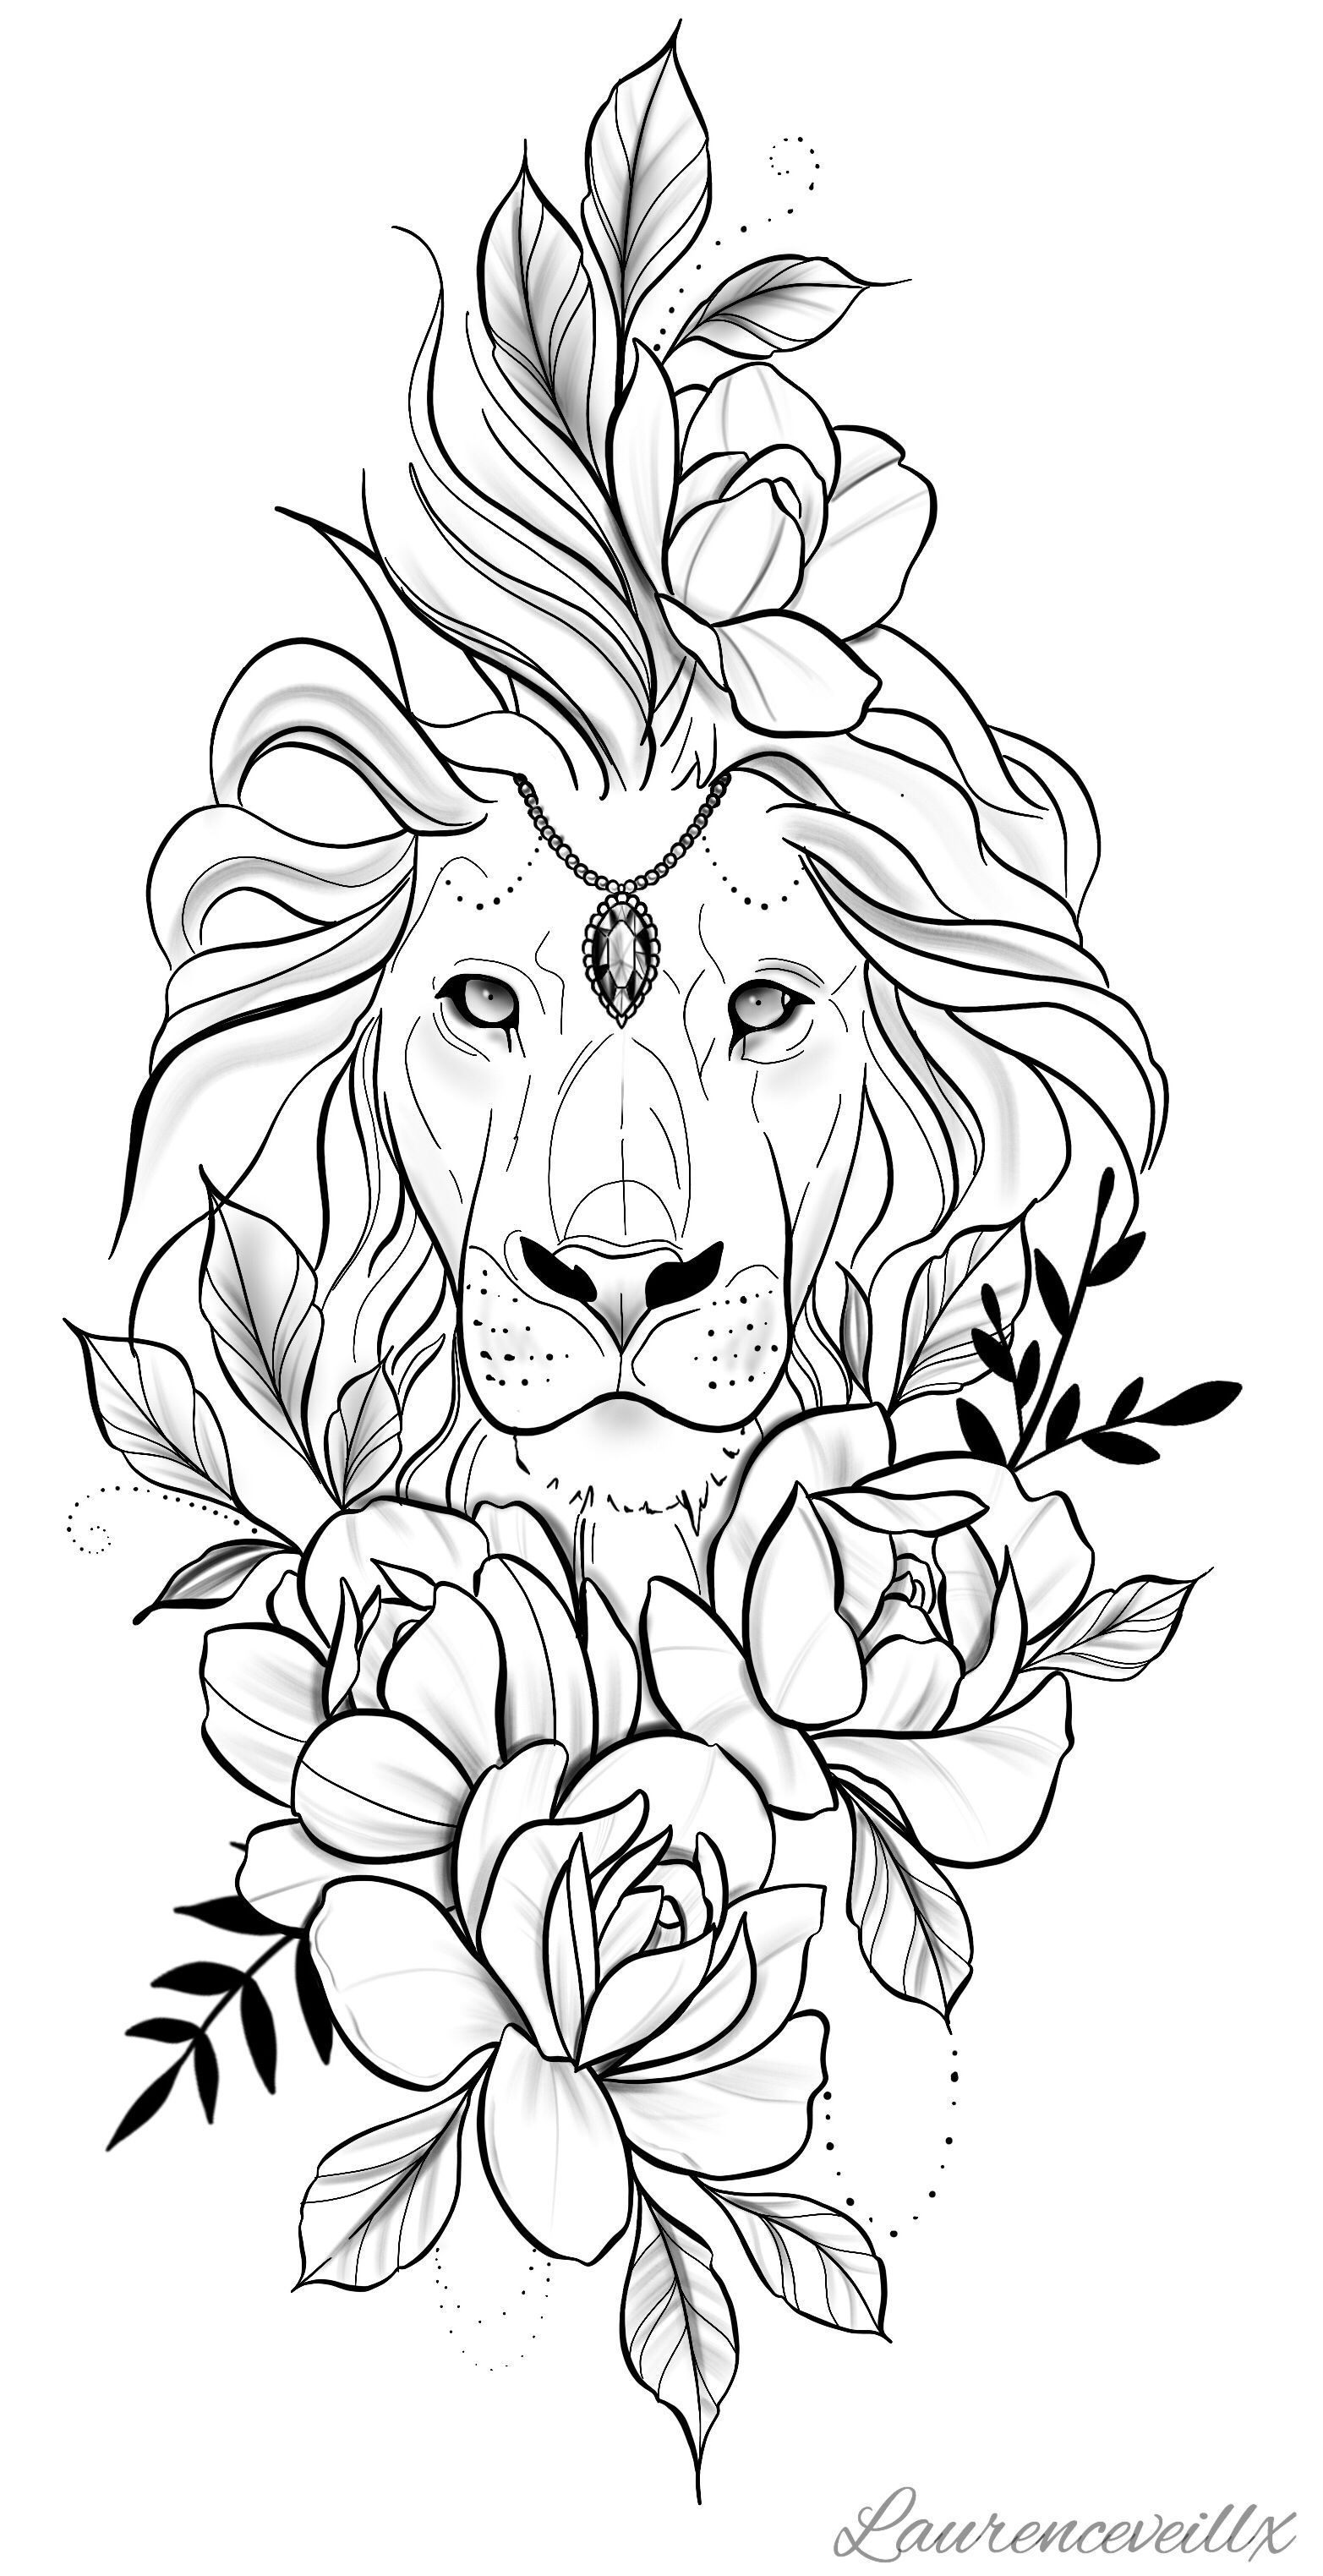 Lion flower tattoo @